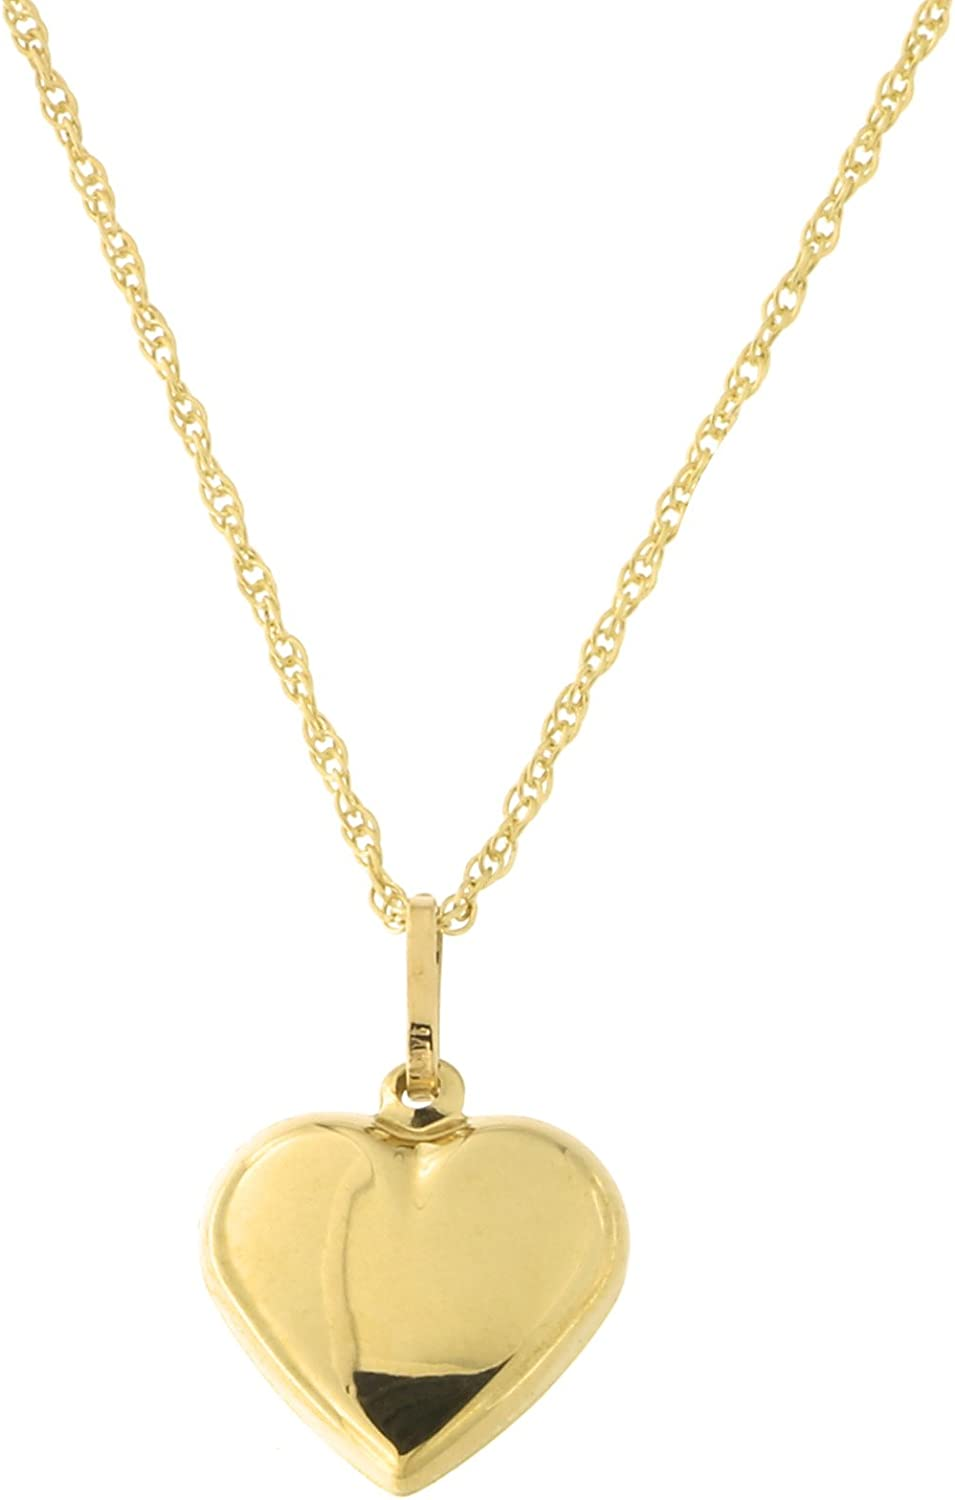 Beauniq 14k Yellow Gold Heart Pendant Necklace